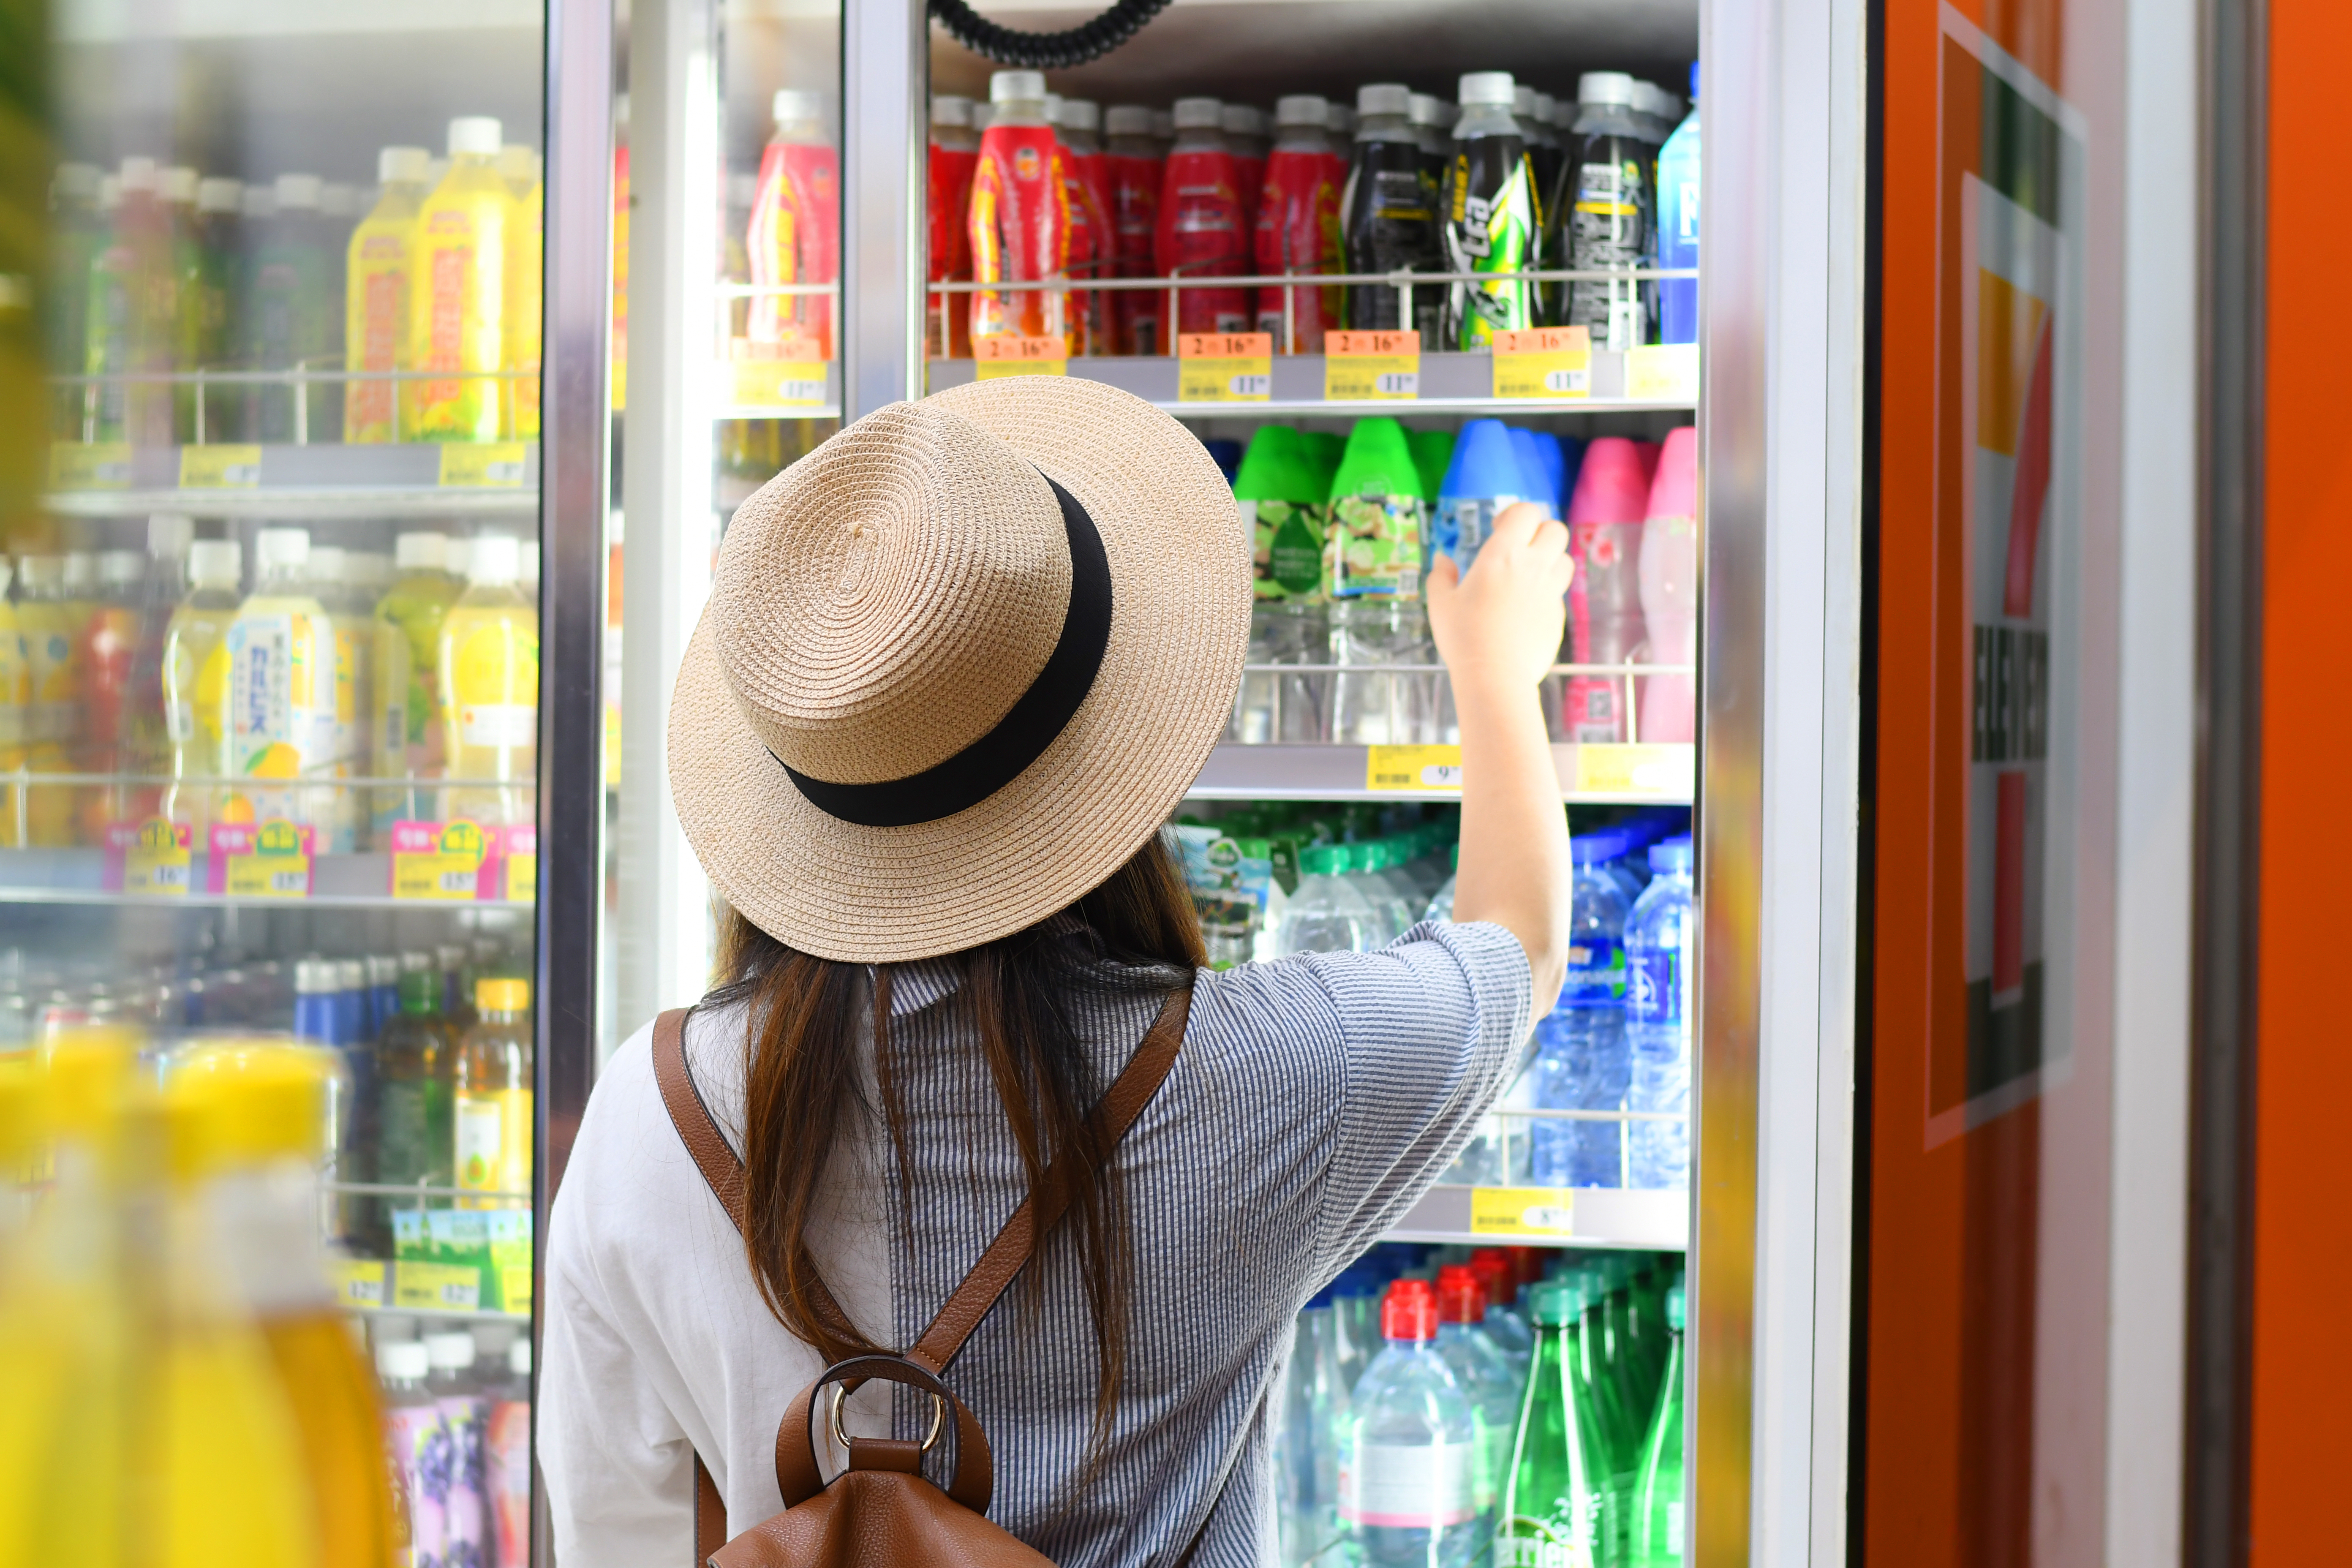 A woman standing in front of a refrigerator in a Chinese 7-Eleven